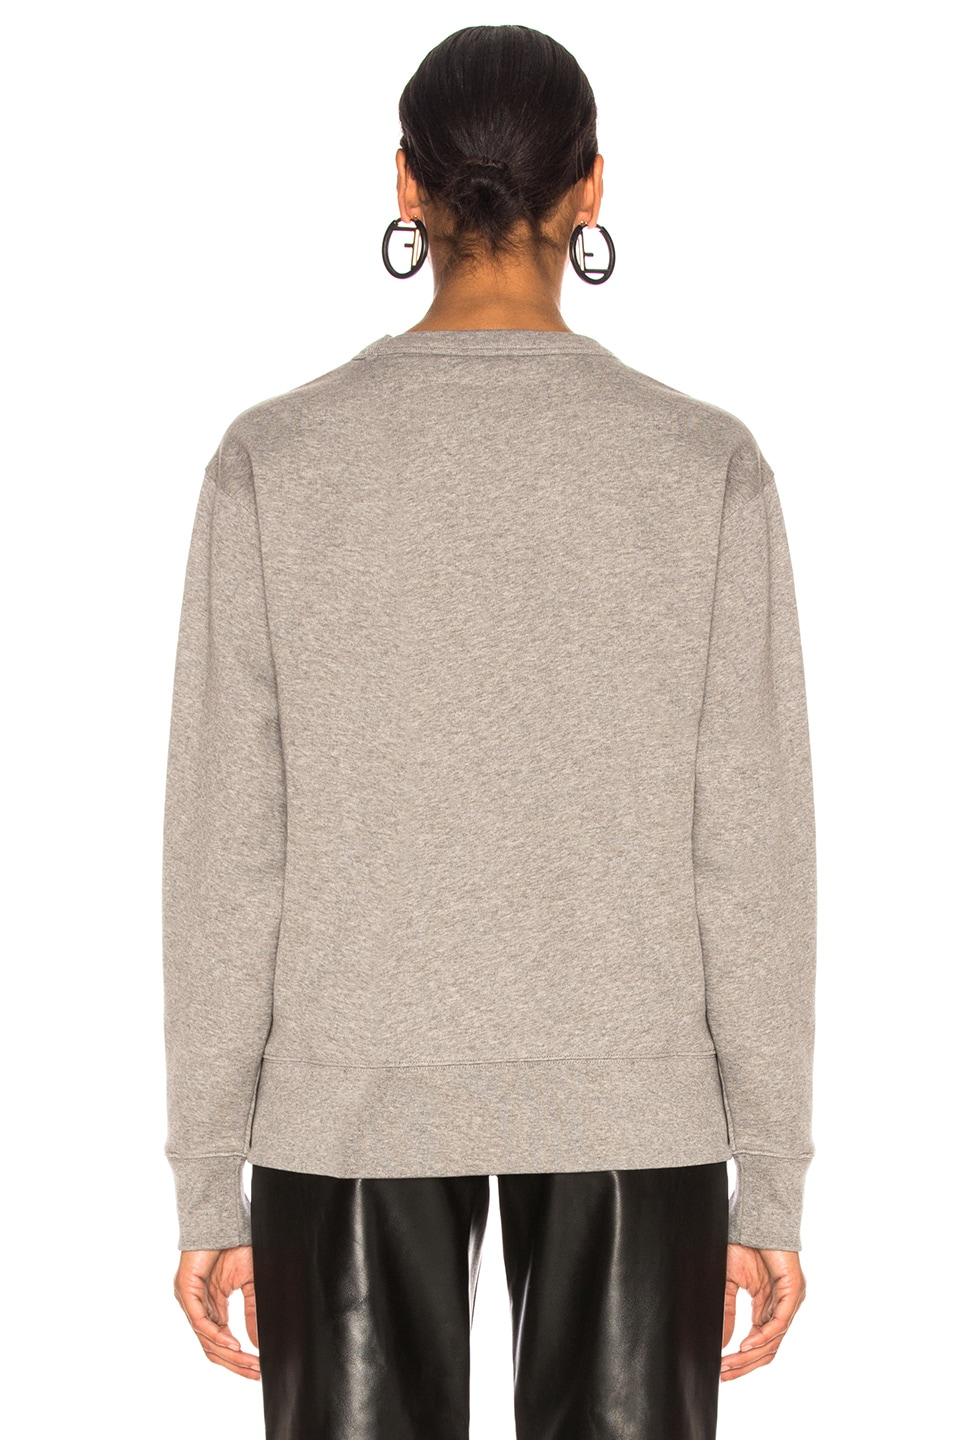 Image 3 of Acne Studios Fairview Face Sweater in Light Grey Melange